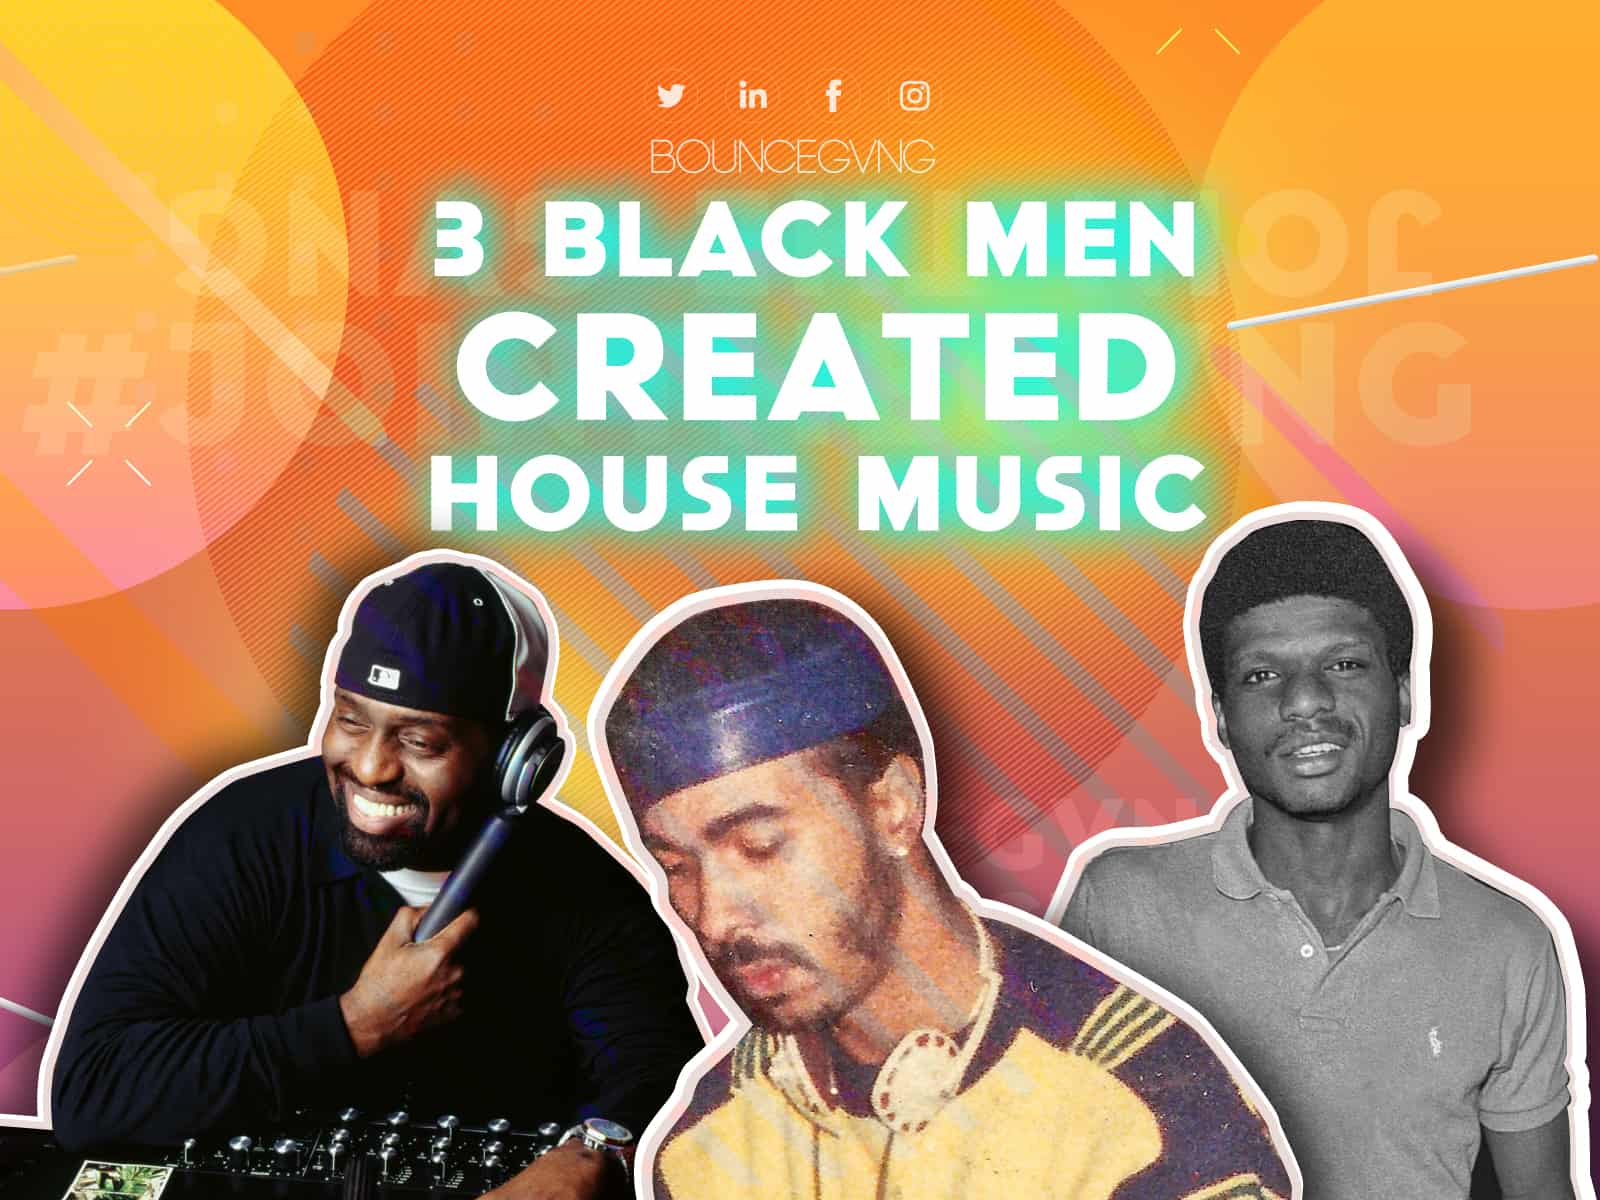 Larry Levan, Frankie Knuckles, & Ron Hardy created House Music